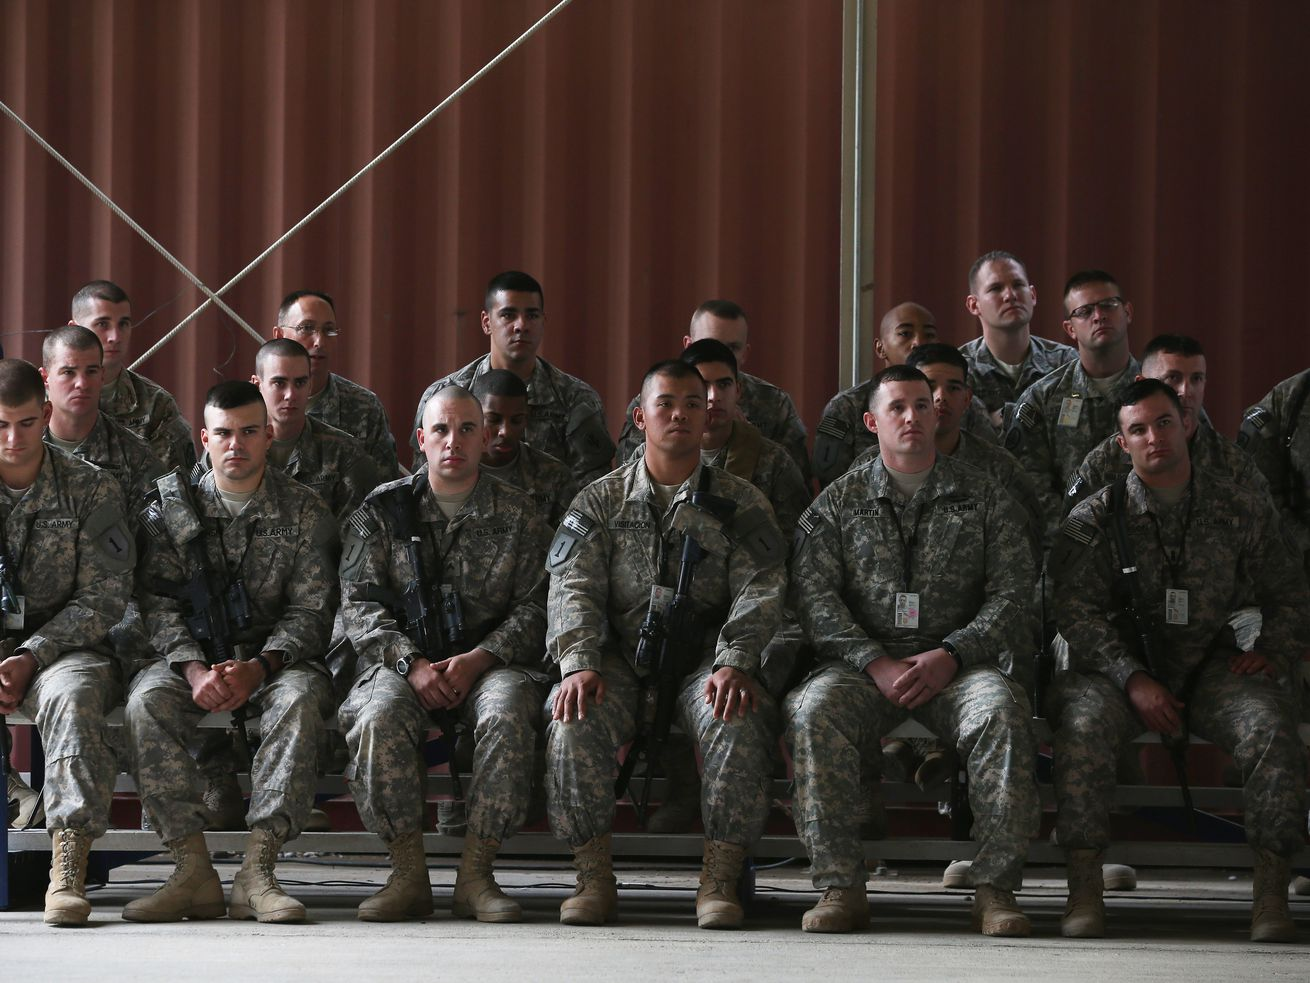 US troops listen to former Secretary of Defense Chuck Hagel speak during a visit to Baghdad, Iraq, on December 9, 2014.